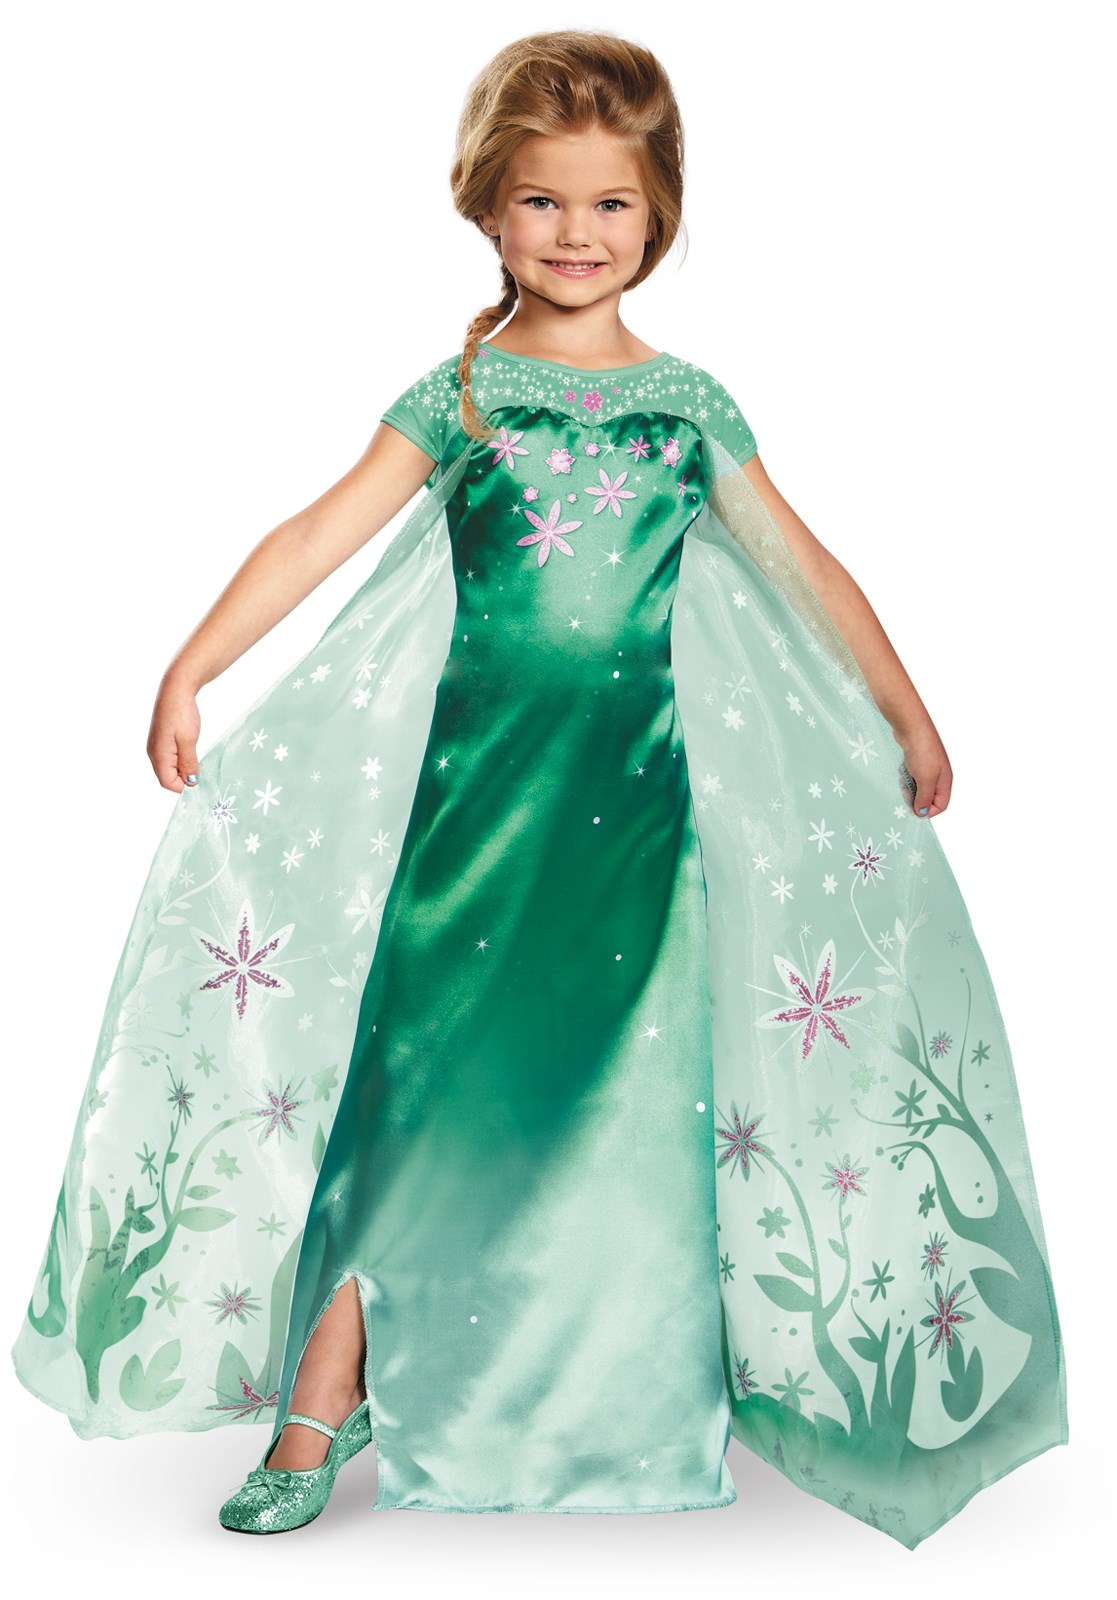 15% off coupon + Frozen Fever.